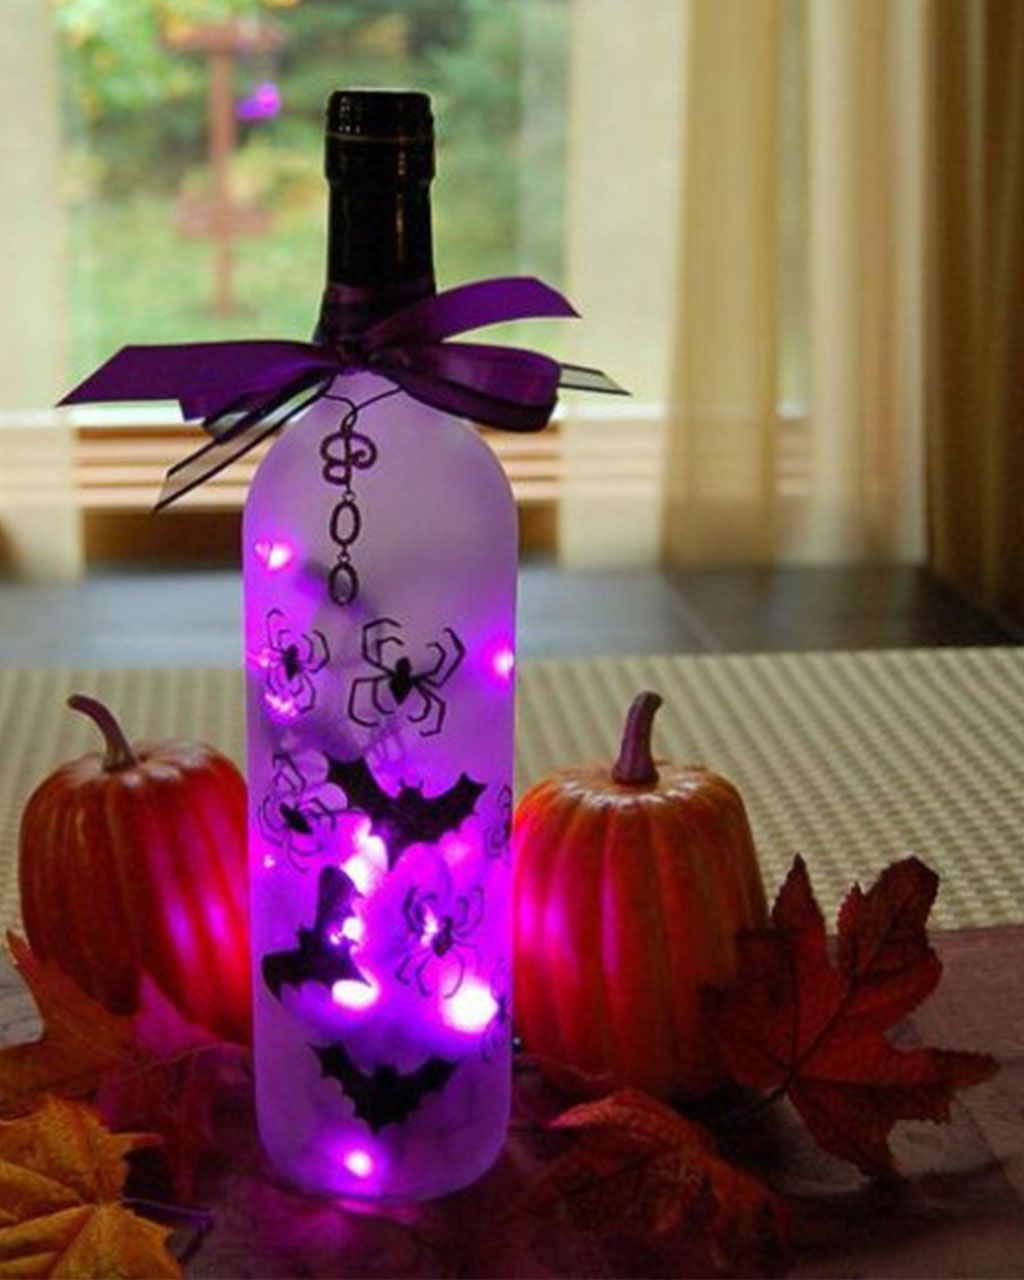 50 indoor decorations that take halloween to the next level - Halloween Decorations Ideas